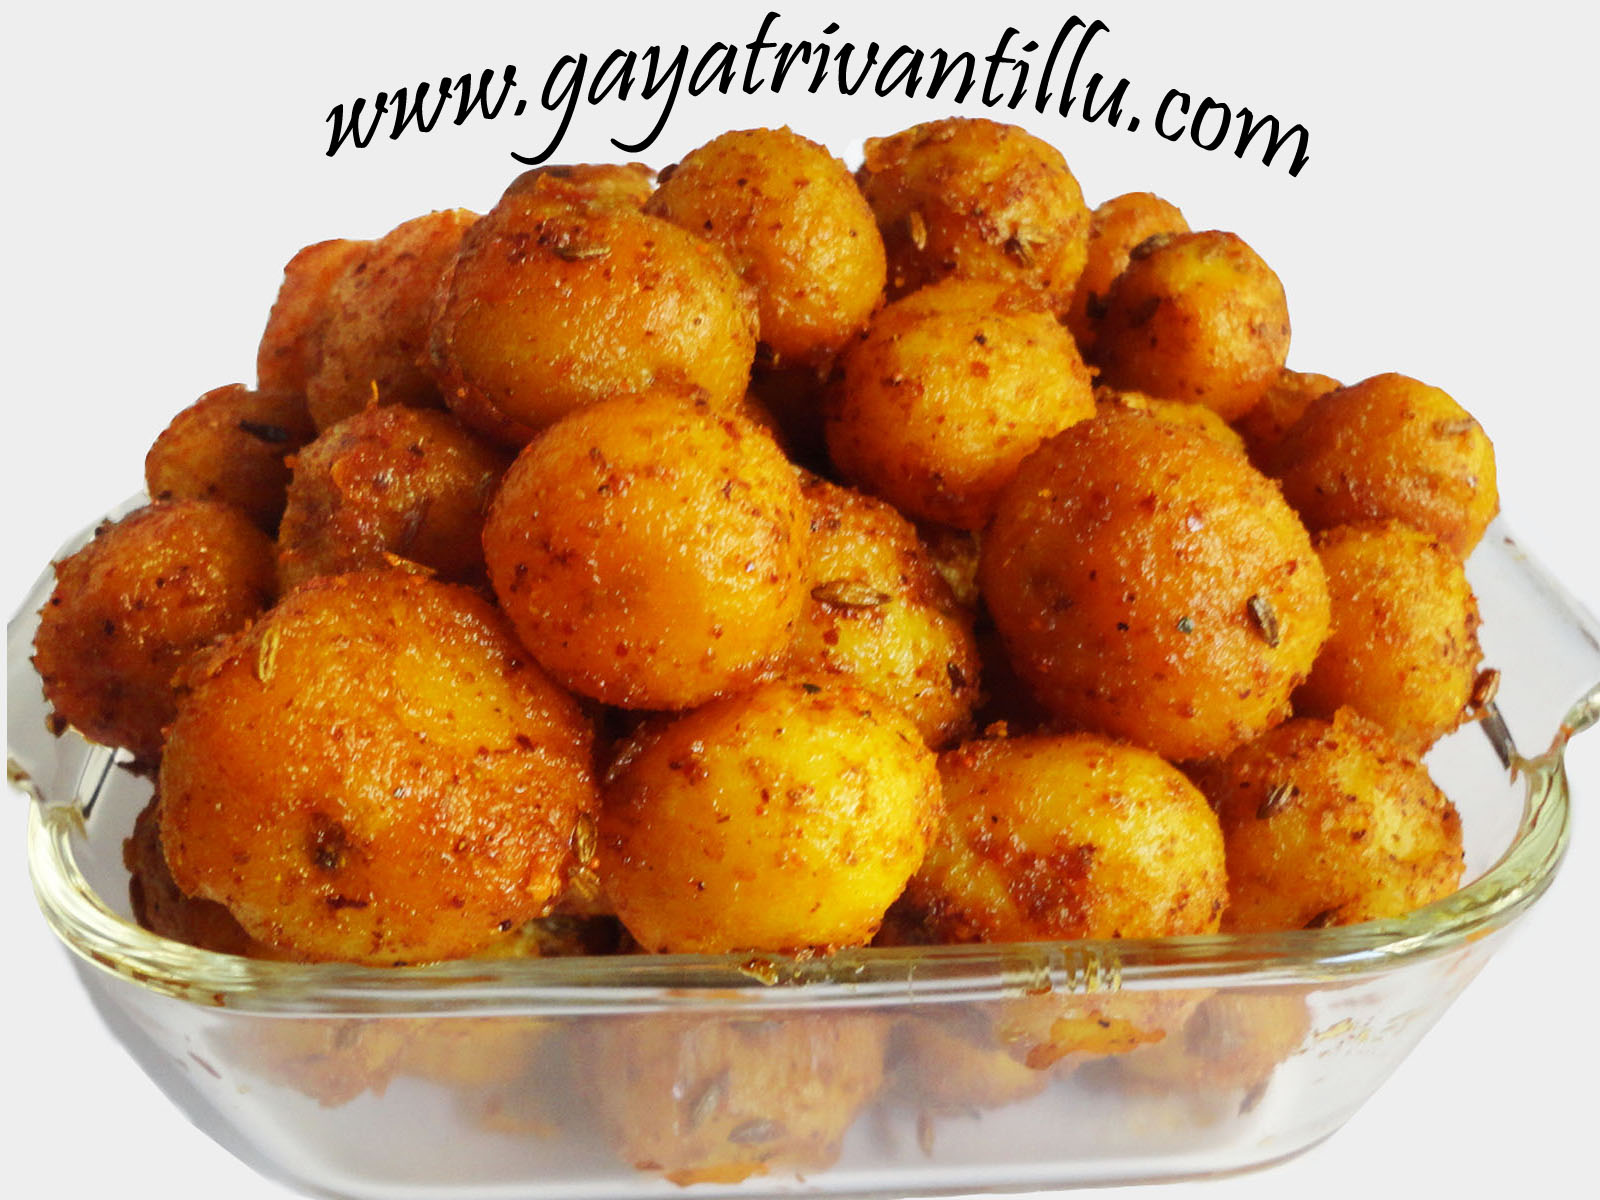 Baby potatoes fry bangaladumpala vepudu andhra telugu recipes baby potatoes fry bangaladumpala vepudu andhra telugu recipes indian vegetarian food andhra recipes telugu vantalu gayatri vantillu forumfinder Images